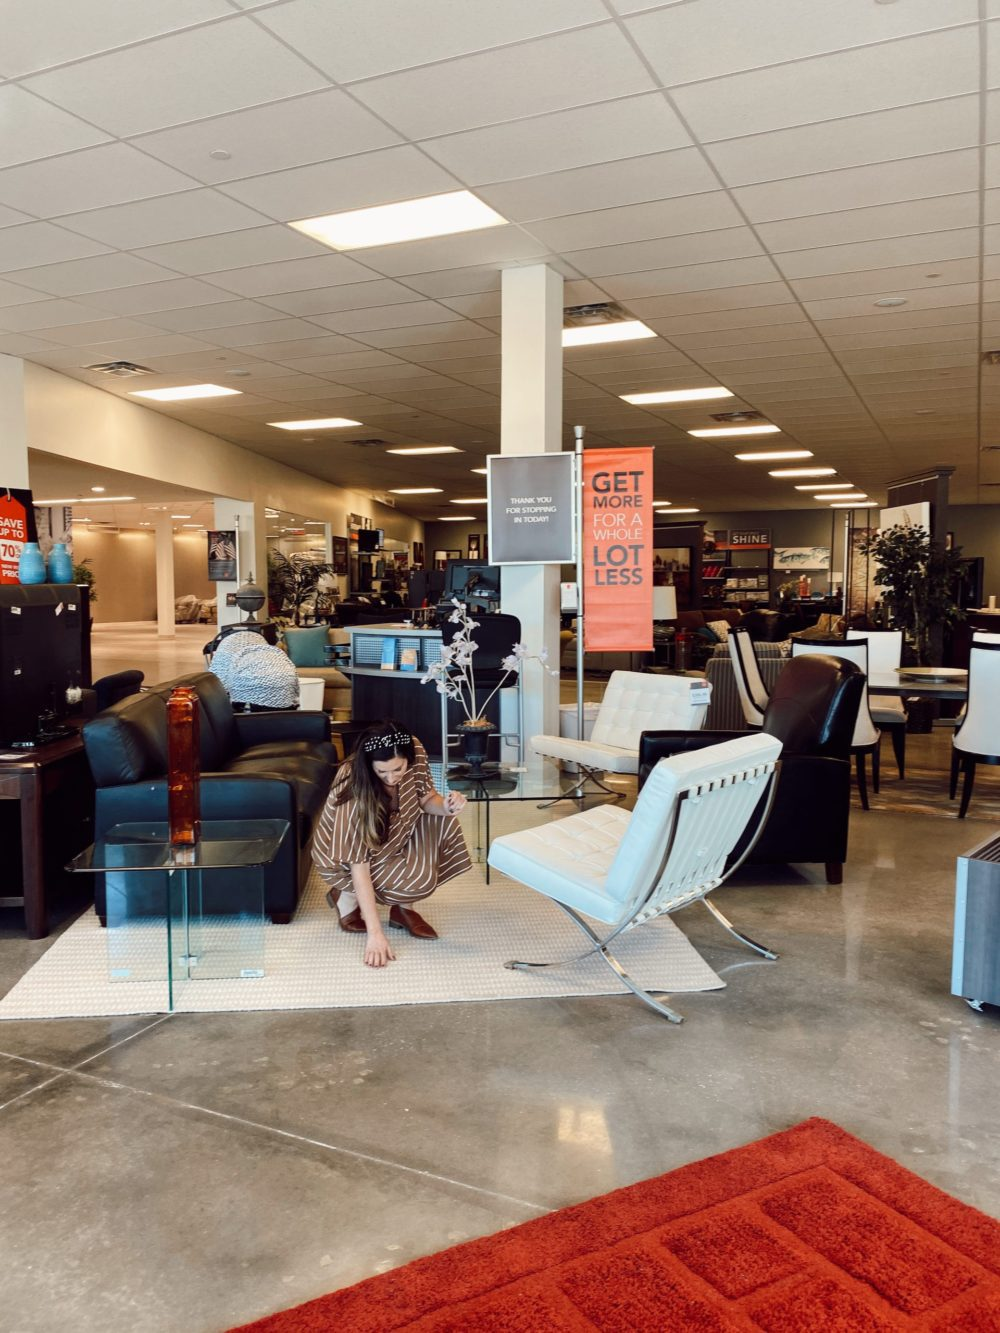 7 Geniously Efficient Mom Hacks for Home Design | 7 Genius Efficient Home Design Hacks for Moms by popular Florida life and style blog, Fresh Mommy Blog: image of a mom looking at a rug at CORT furniture outlet.